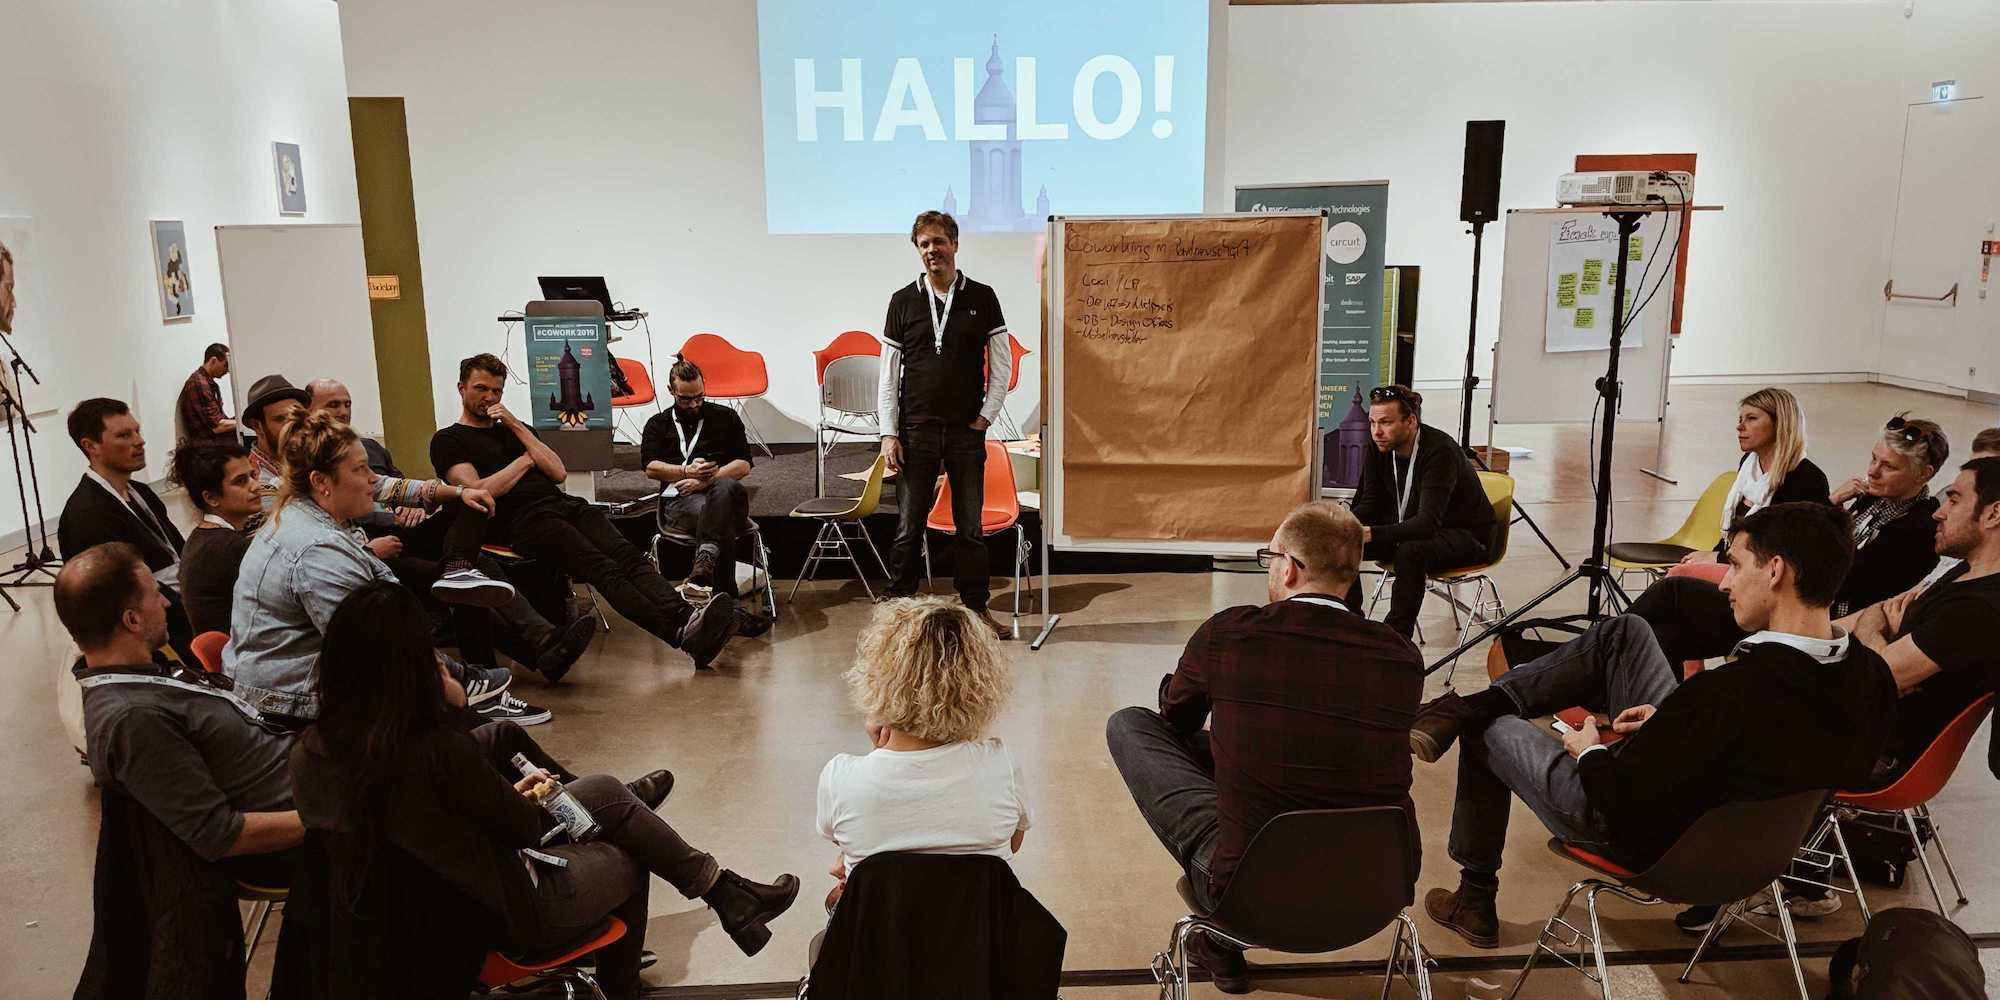 BarCamp session at the COWORK 2019 in Mannheim (Image: Tobias Kremkau)